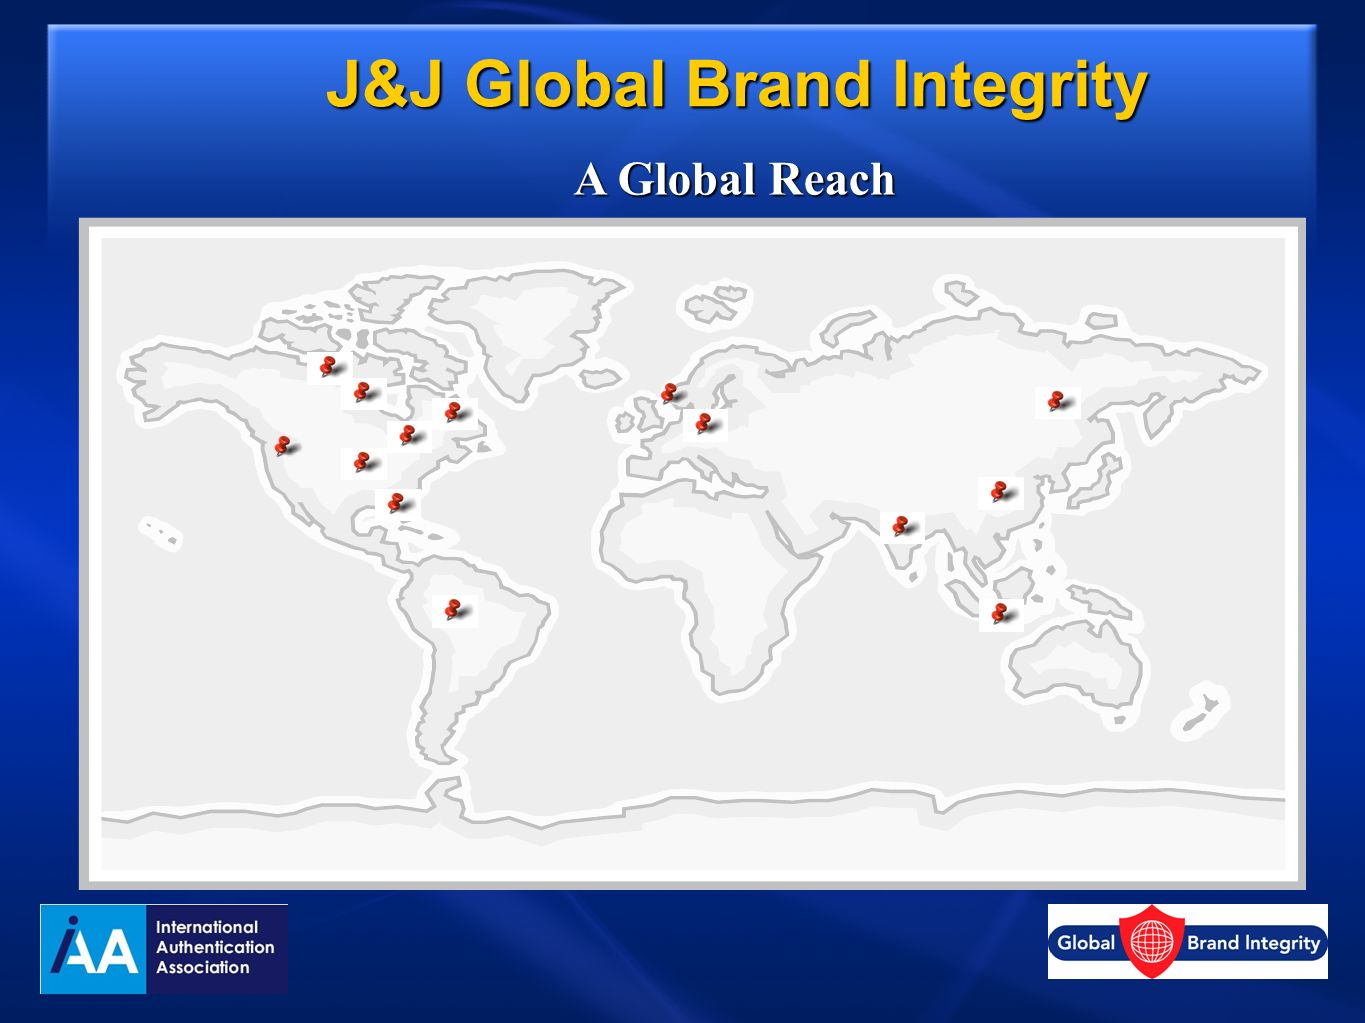 J&J Global Brand Integrity A Global Reach